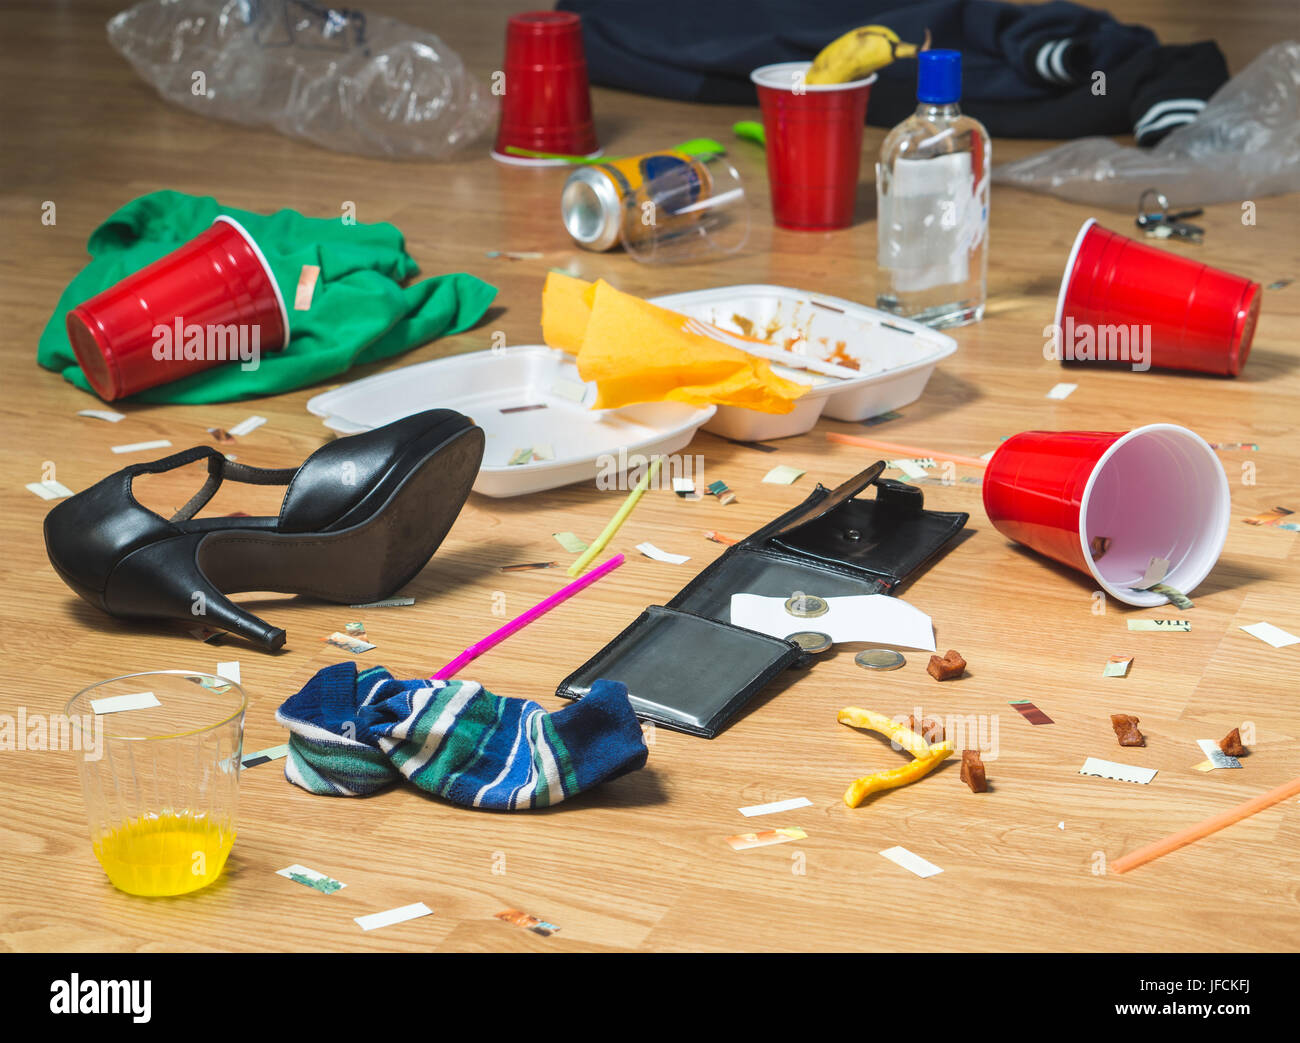 Next morning to a party. Horrible mess and chaos after crazy night at partying and drinking. Trash, bottles, food, - Stock Image